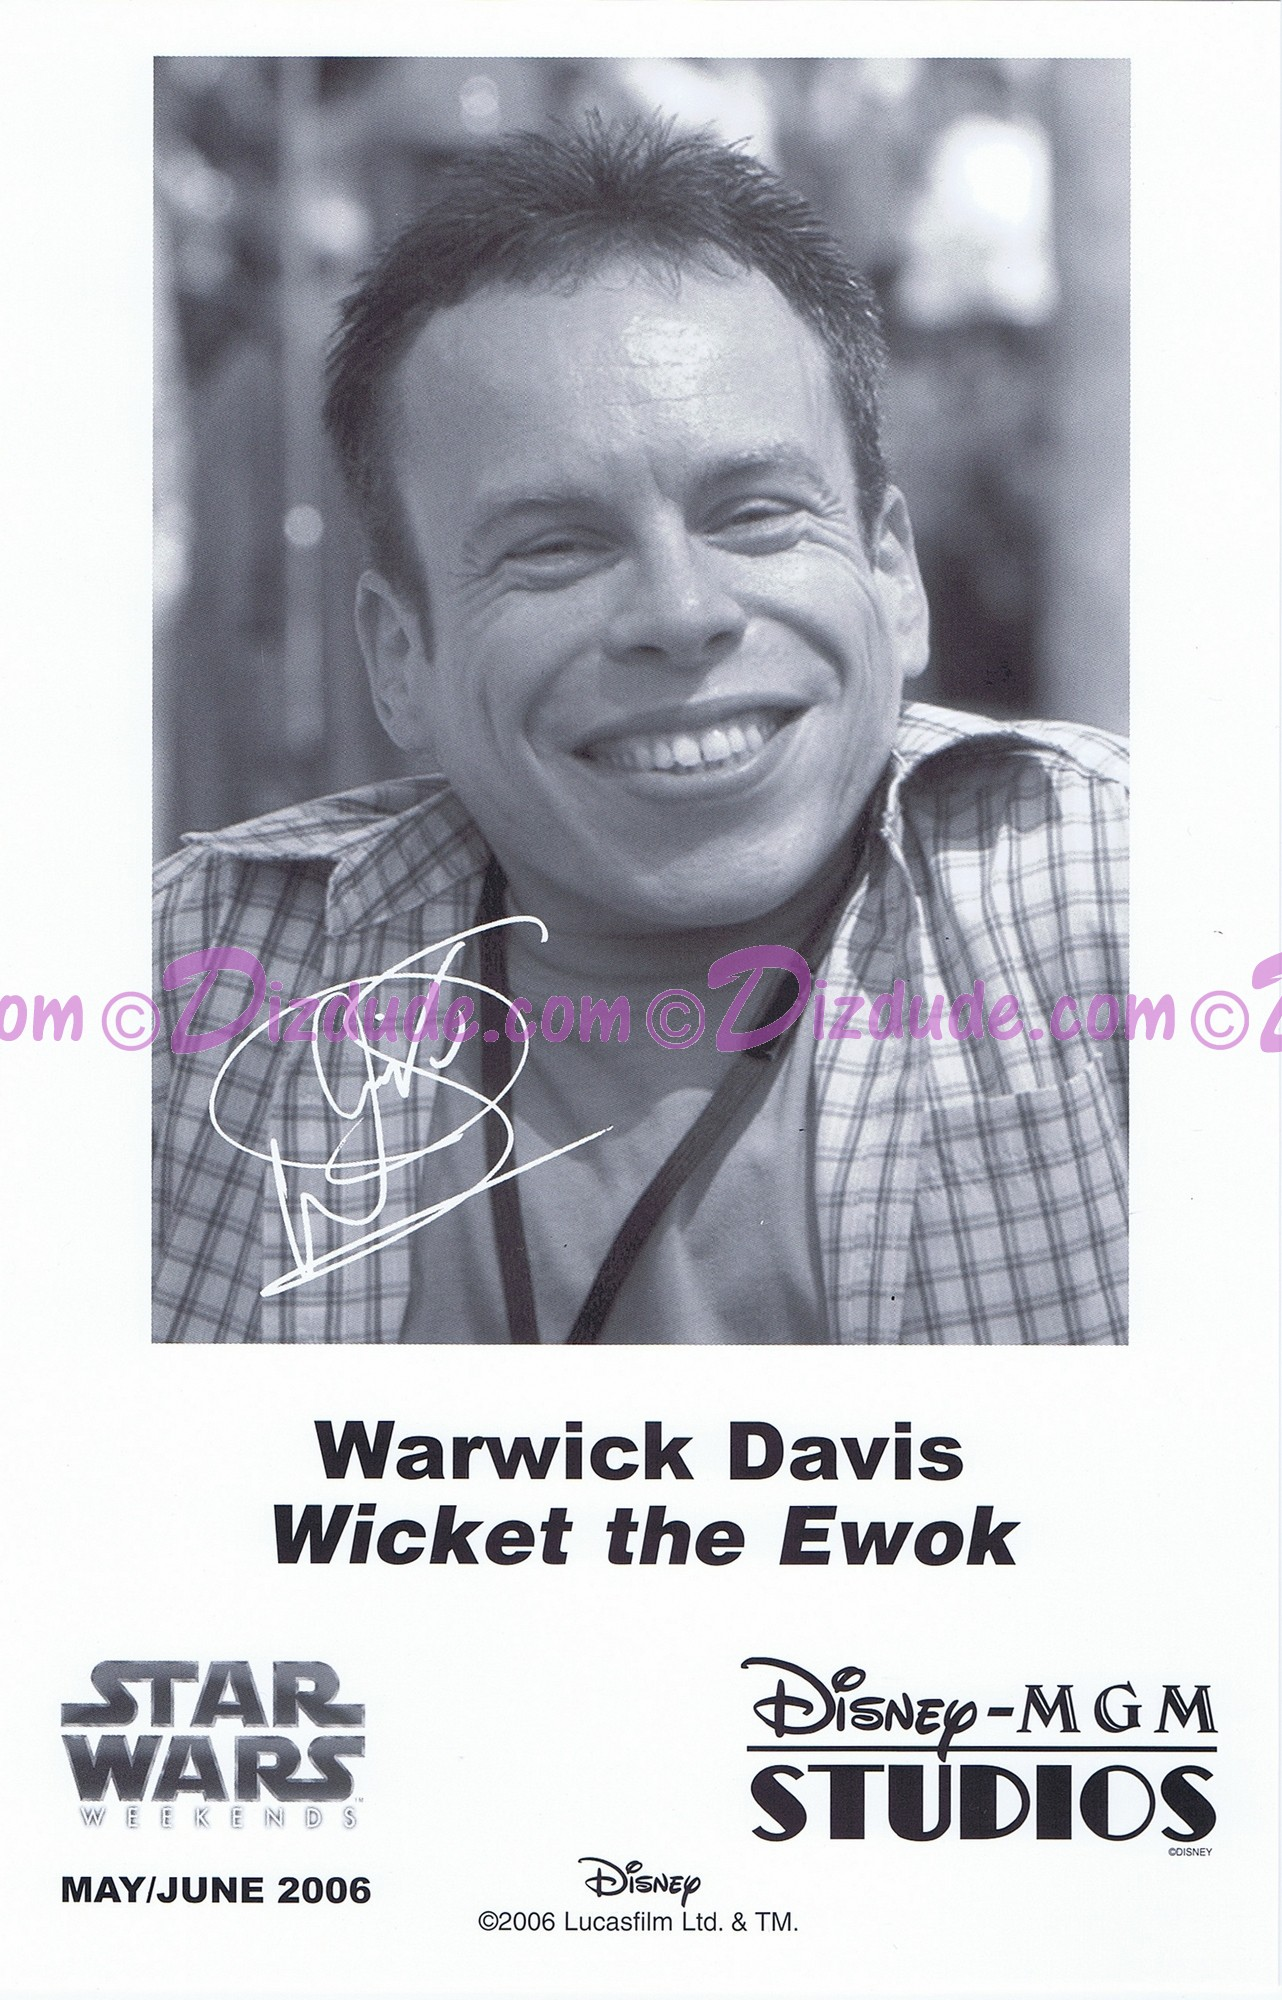 Warwick Davis who played The Ewok Wicket W. Warrick Presigned Official Star Wars Weekends 2006 Celebrity Collector Photo